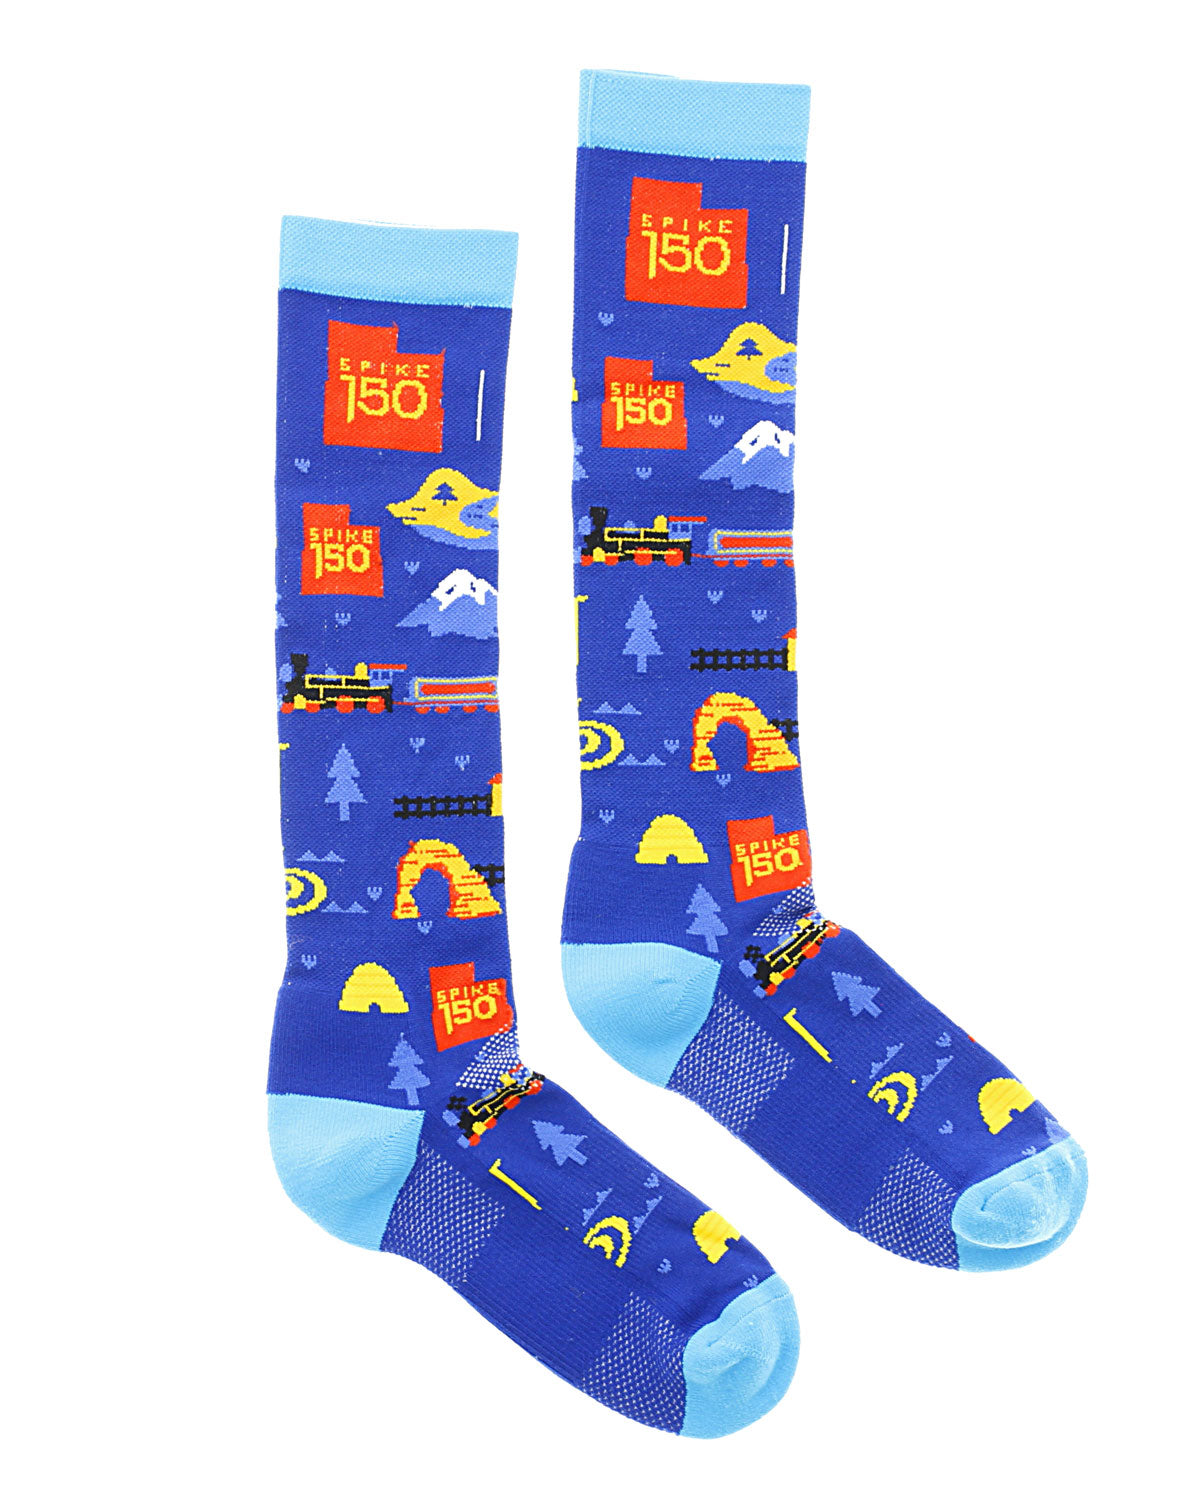 Utah Icons Soccer Socks